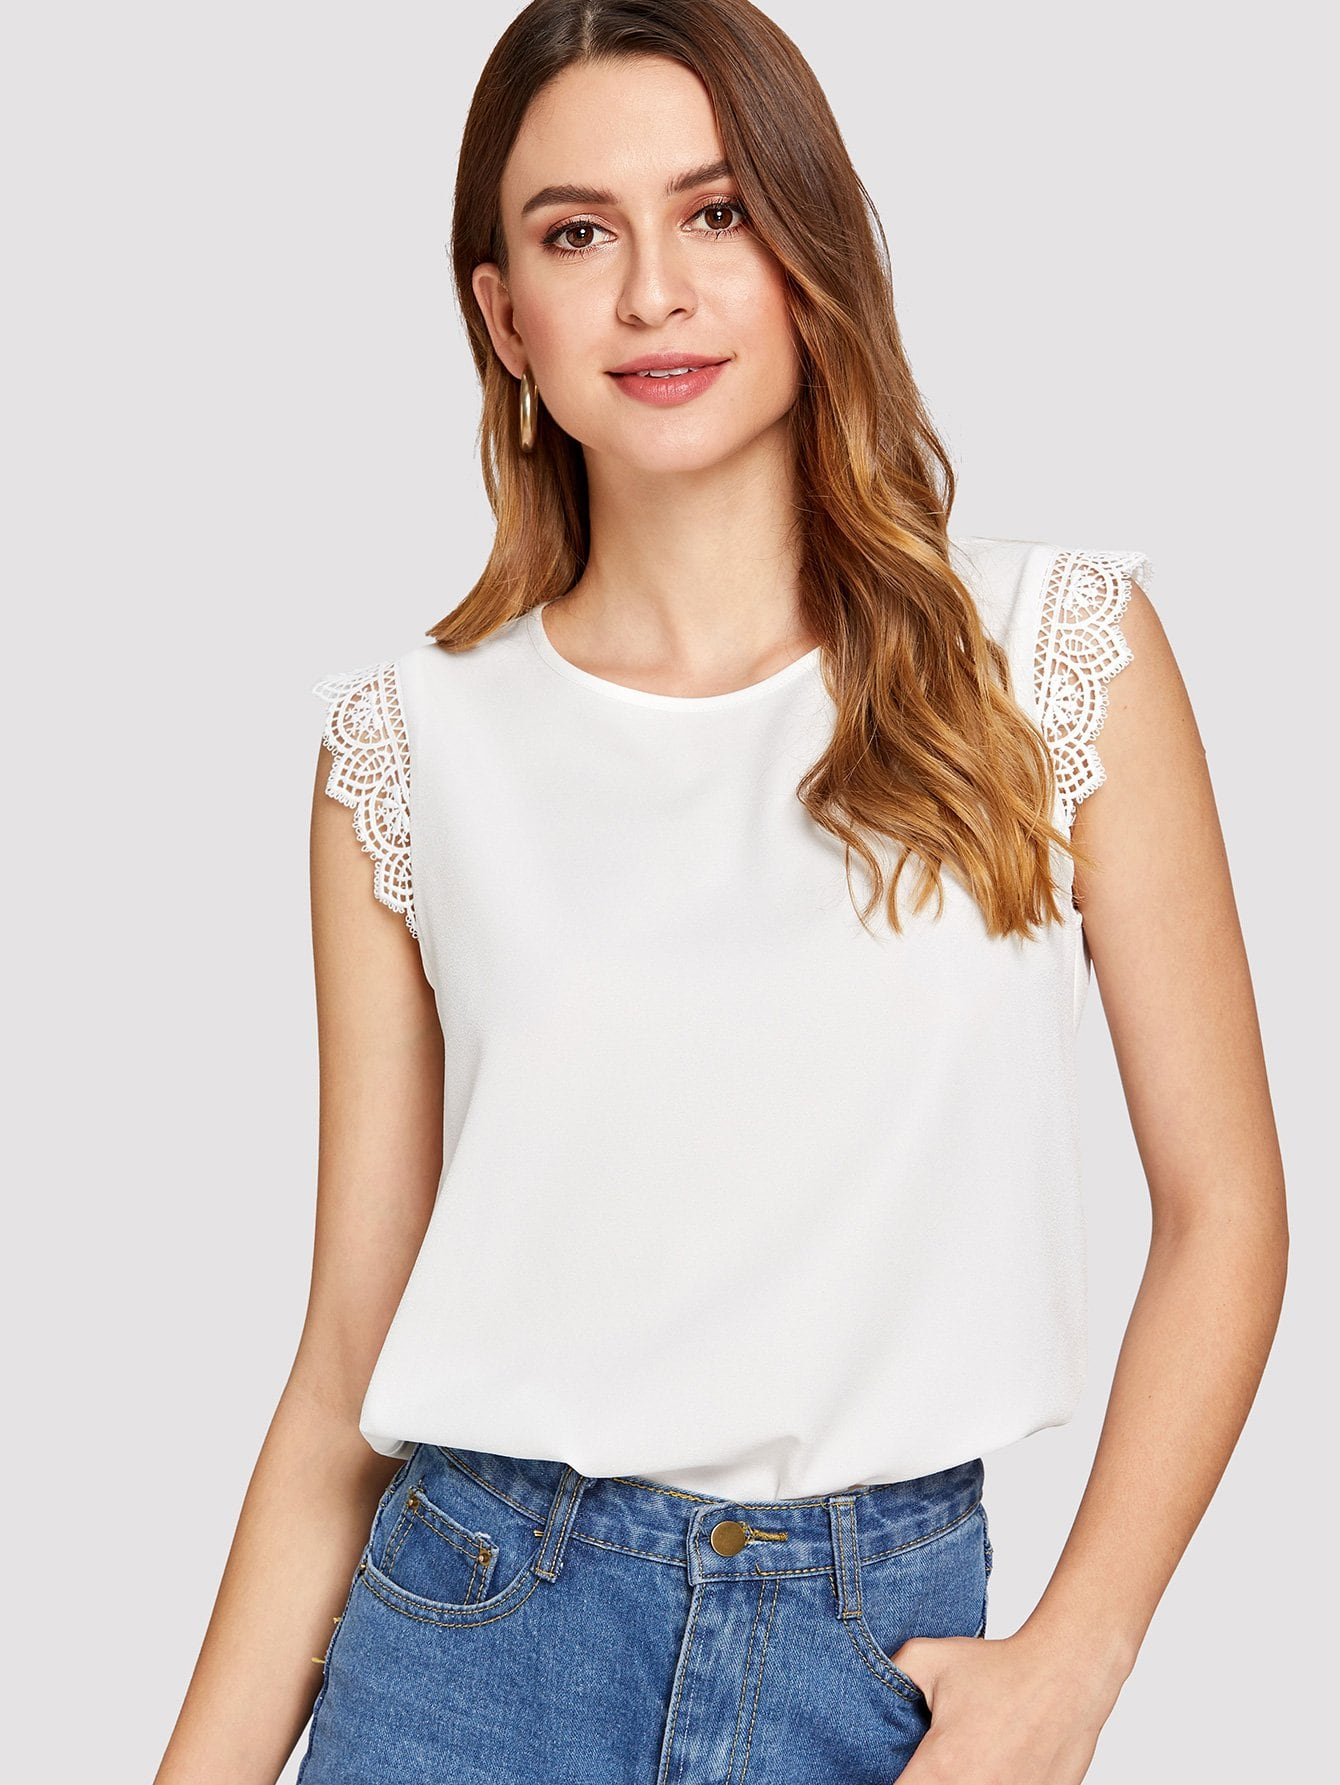 Lace Trim Shell Top lace trim solid top